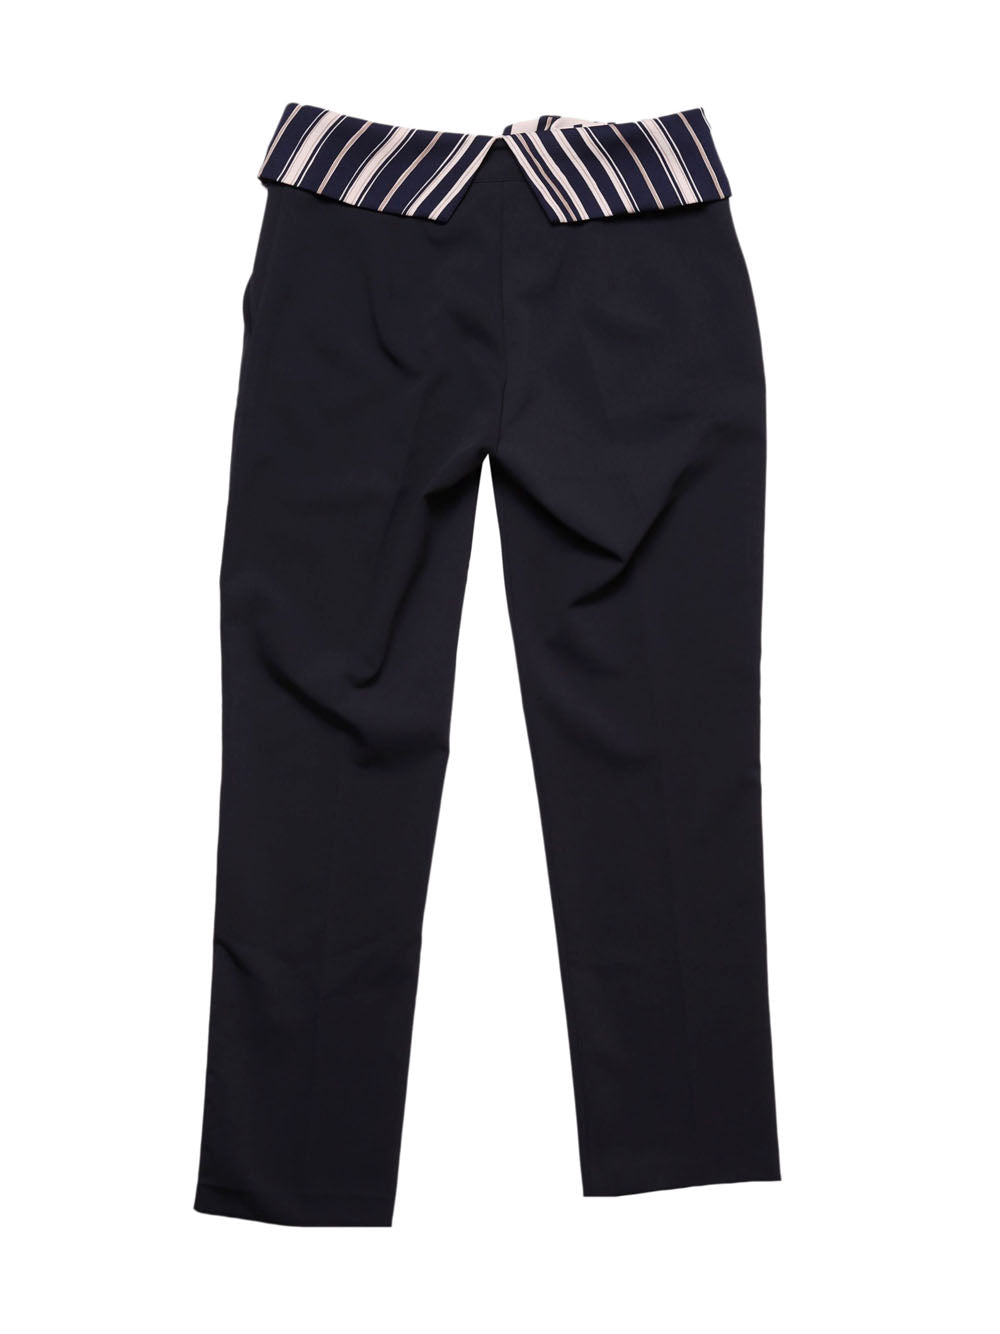 Back photo of Preloved Paolo Casalini Blue Woman's trousers - size 8/S